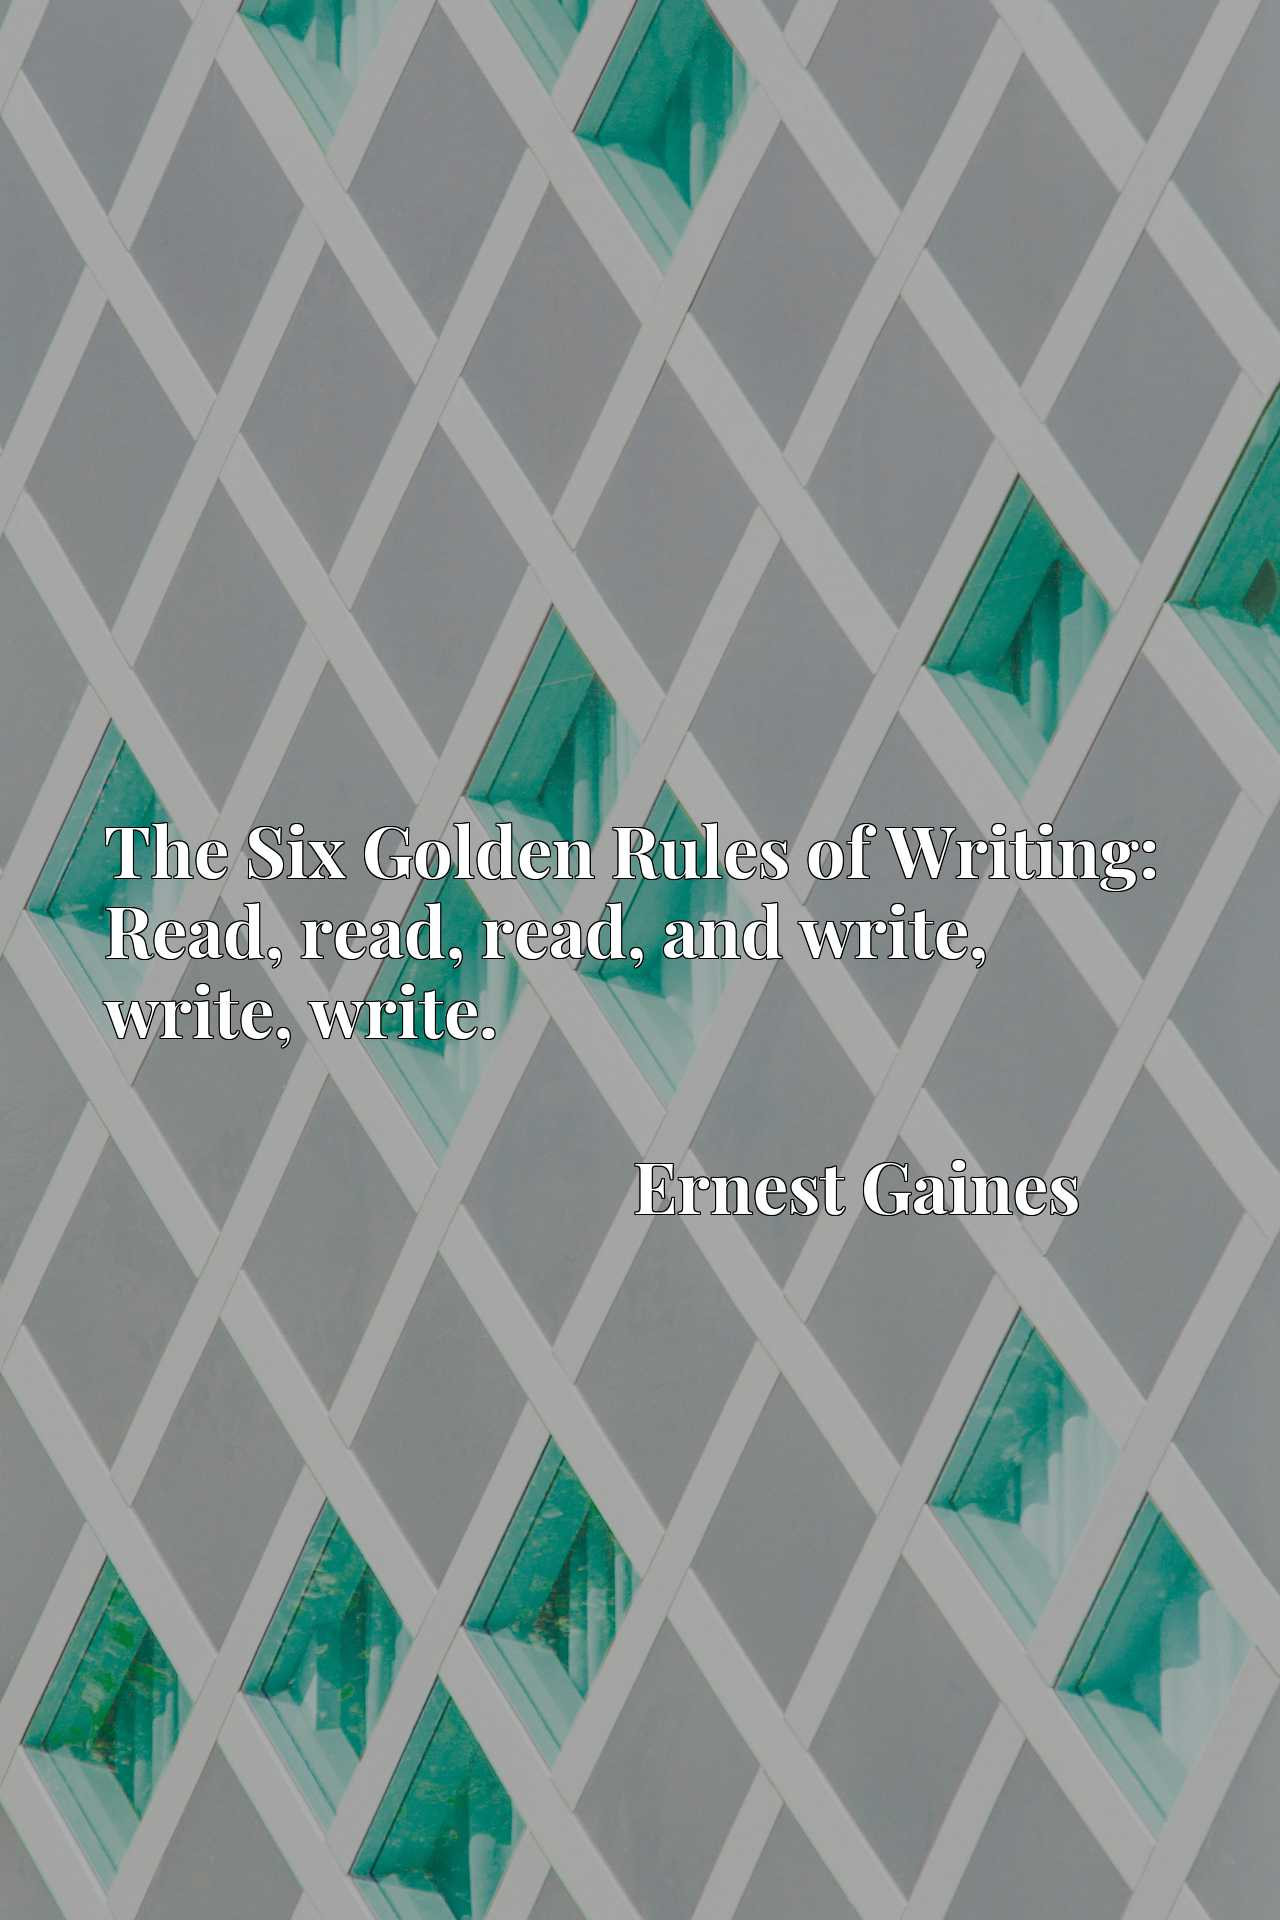 The Six Golden Rules of Writing: Read, read, read, and write, write, write.